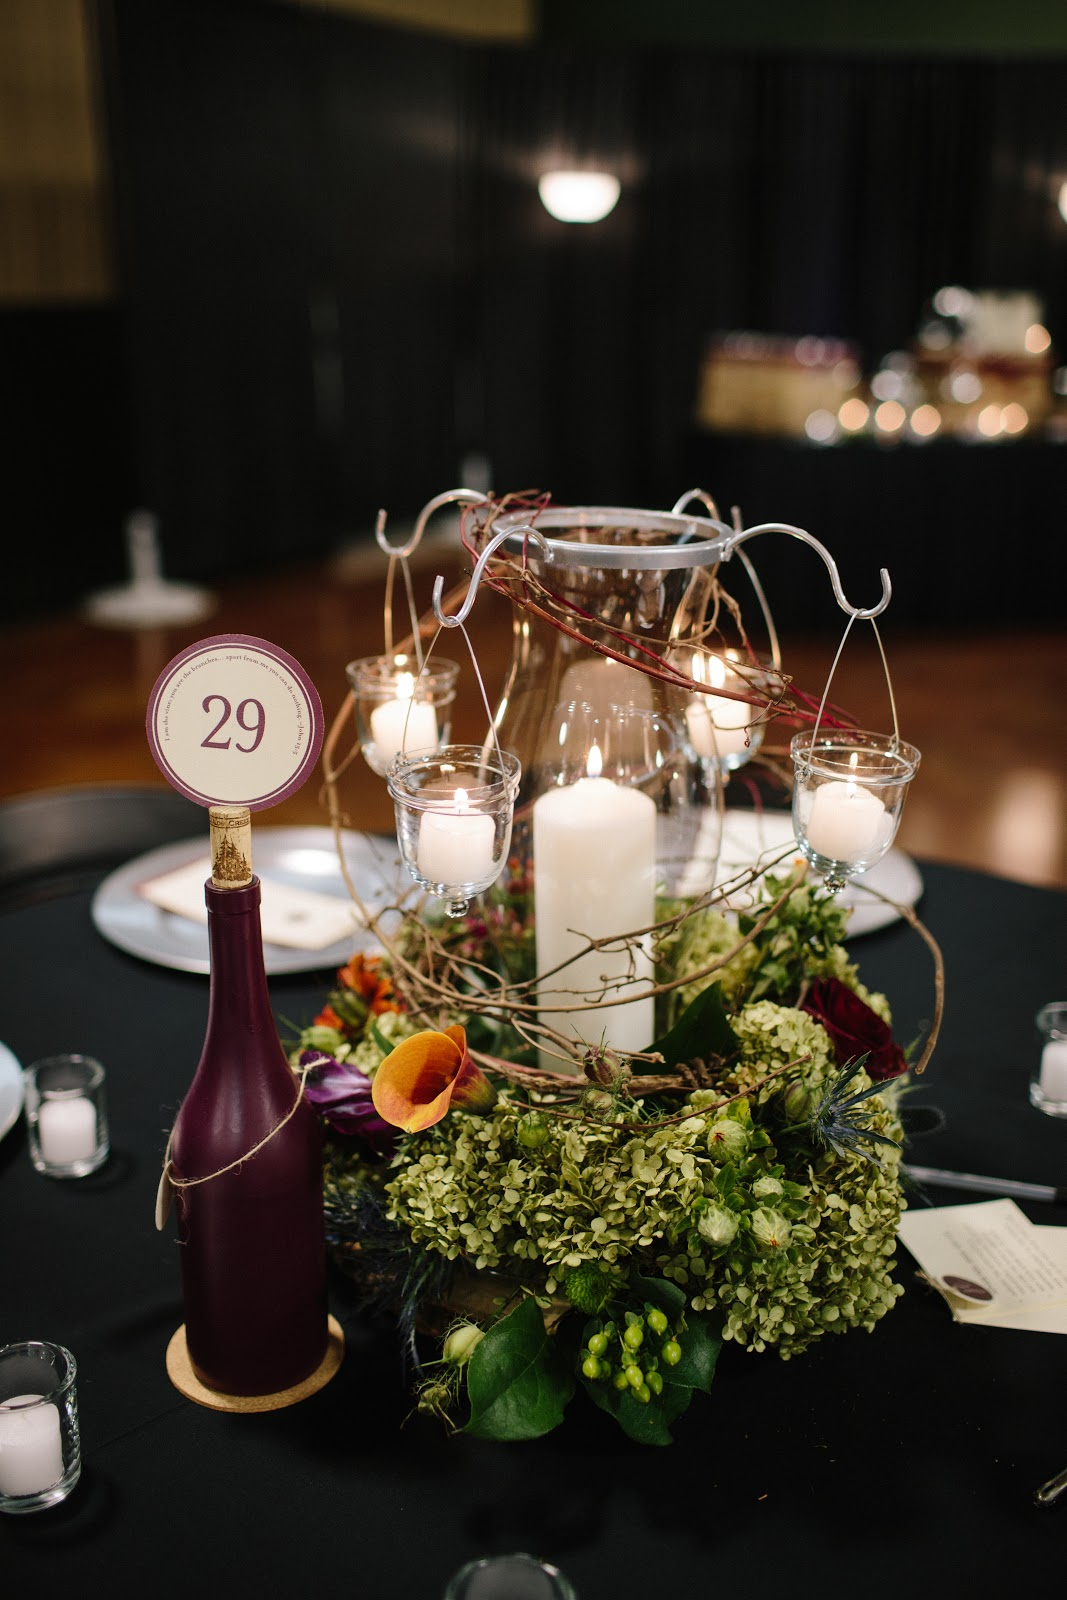 Vineyard wedding decoration ideas choice image wedding decoration winery wedding centerpieces images wedding decoration ideas ideas winery living in his grace our wedding centerpieces junglespirit Gallery